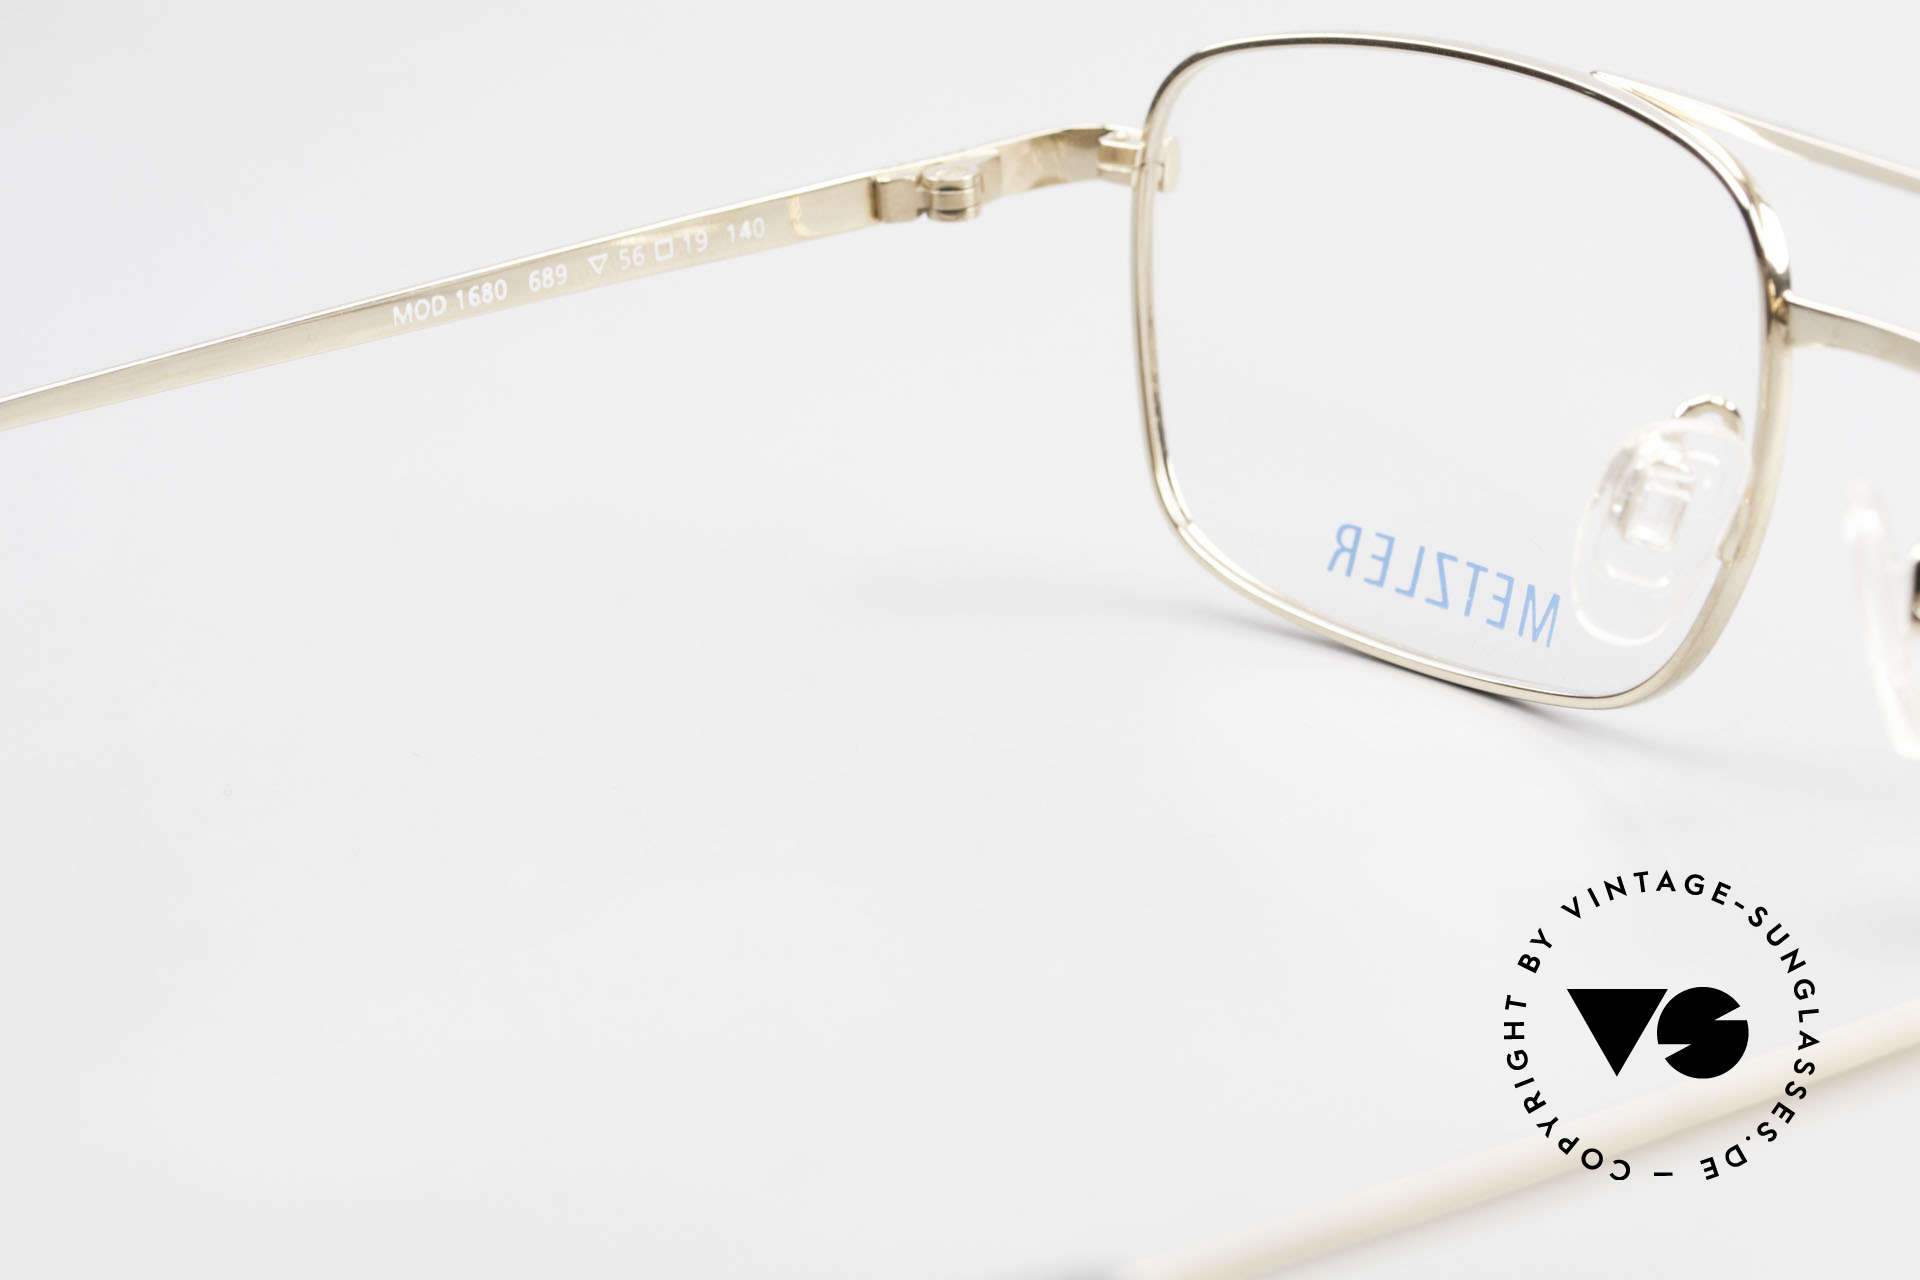 Metzler 1680 90's Titan Frame Gold Plated, the frame can be glazed with optical (sun) lenses, Made for Men